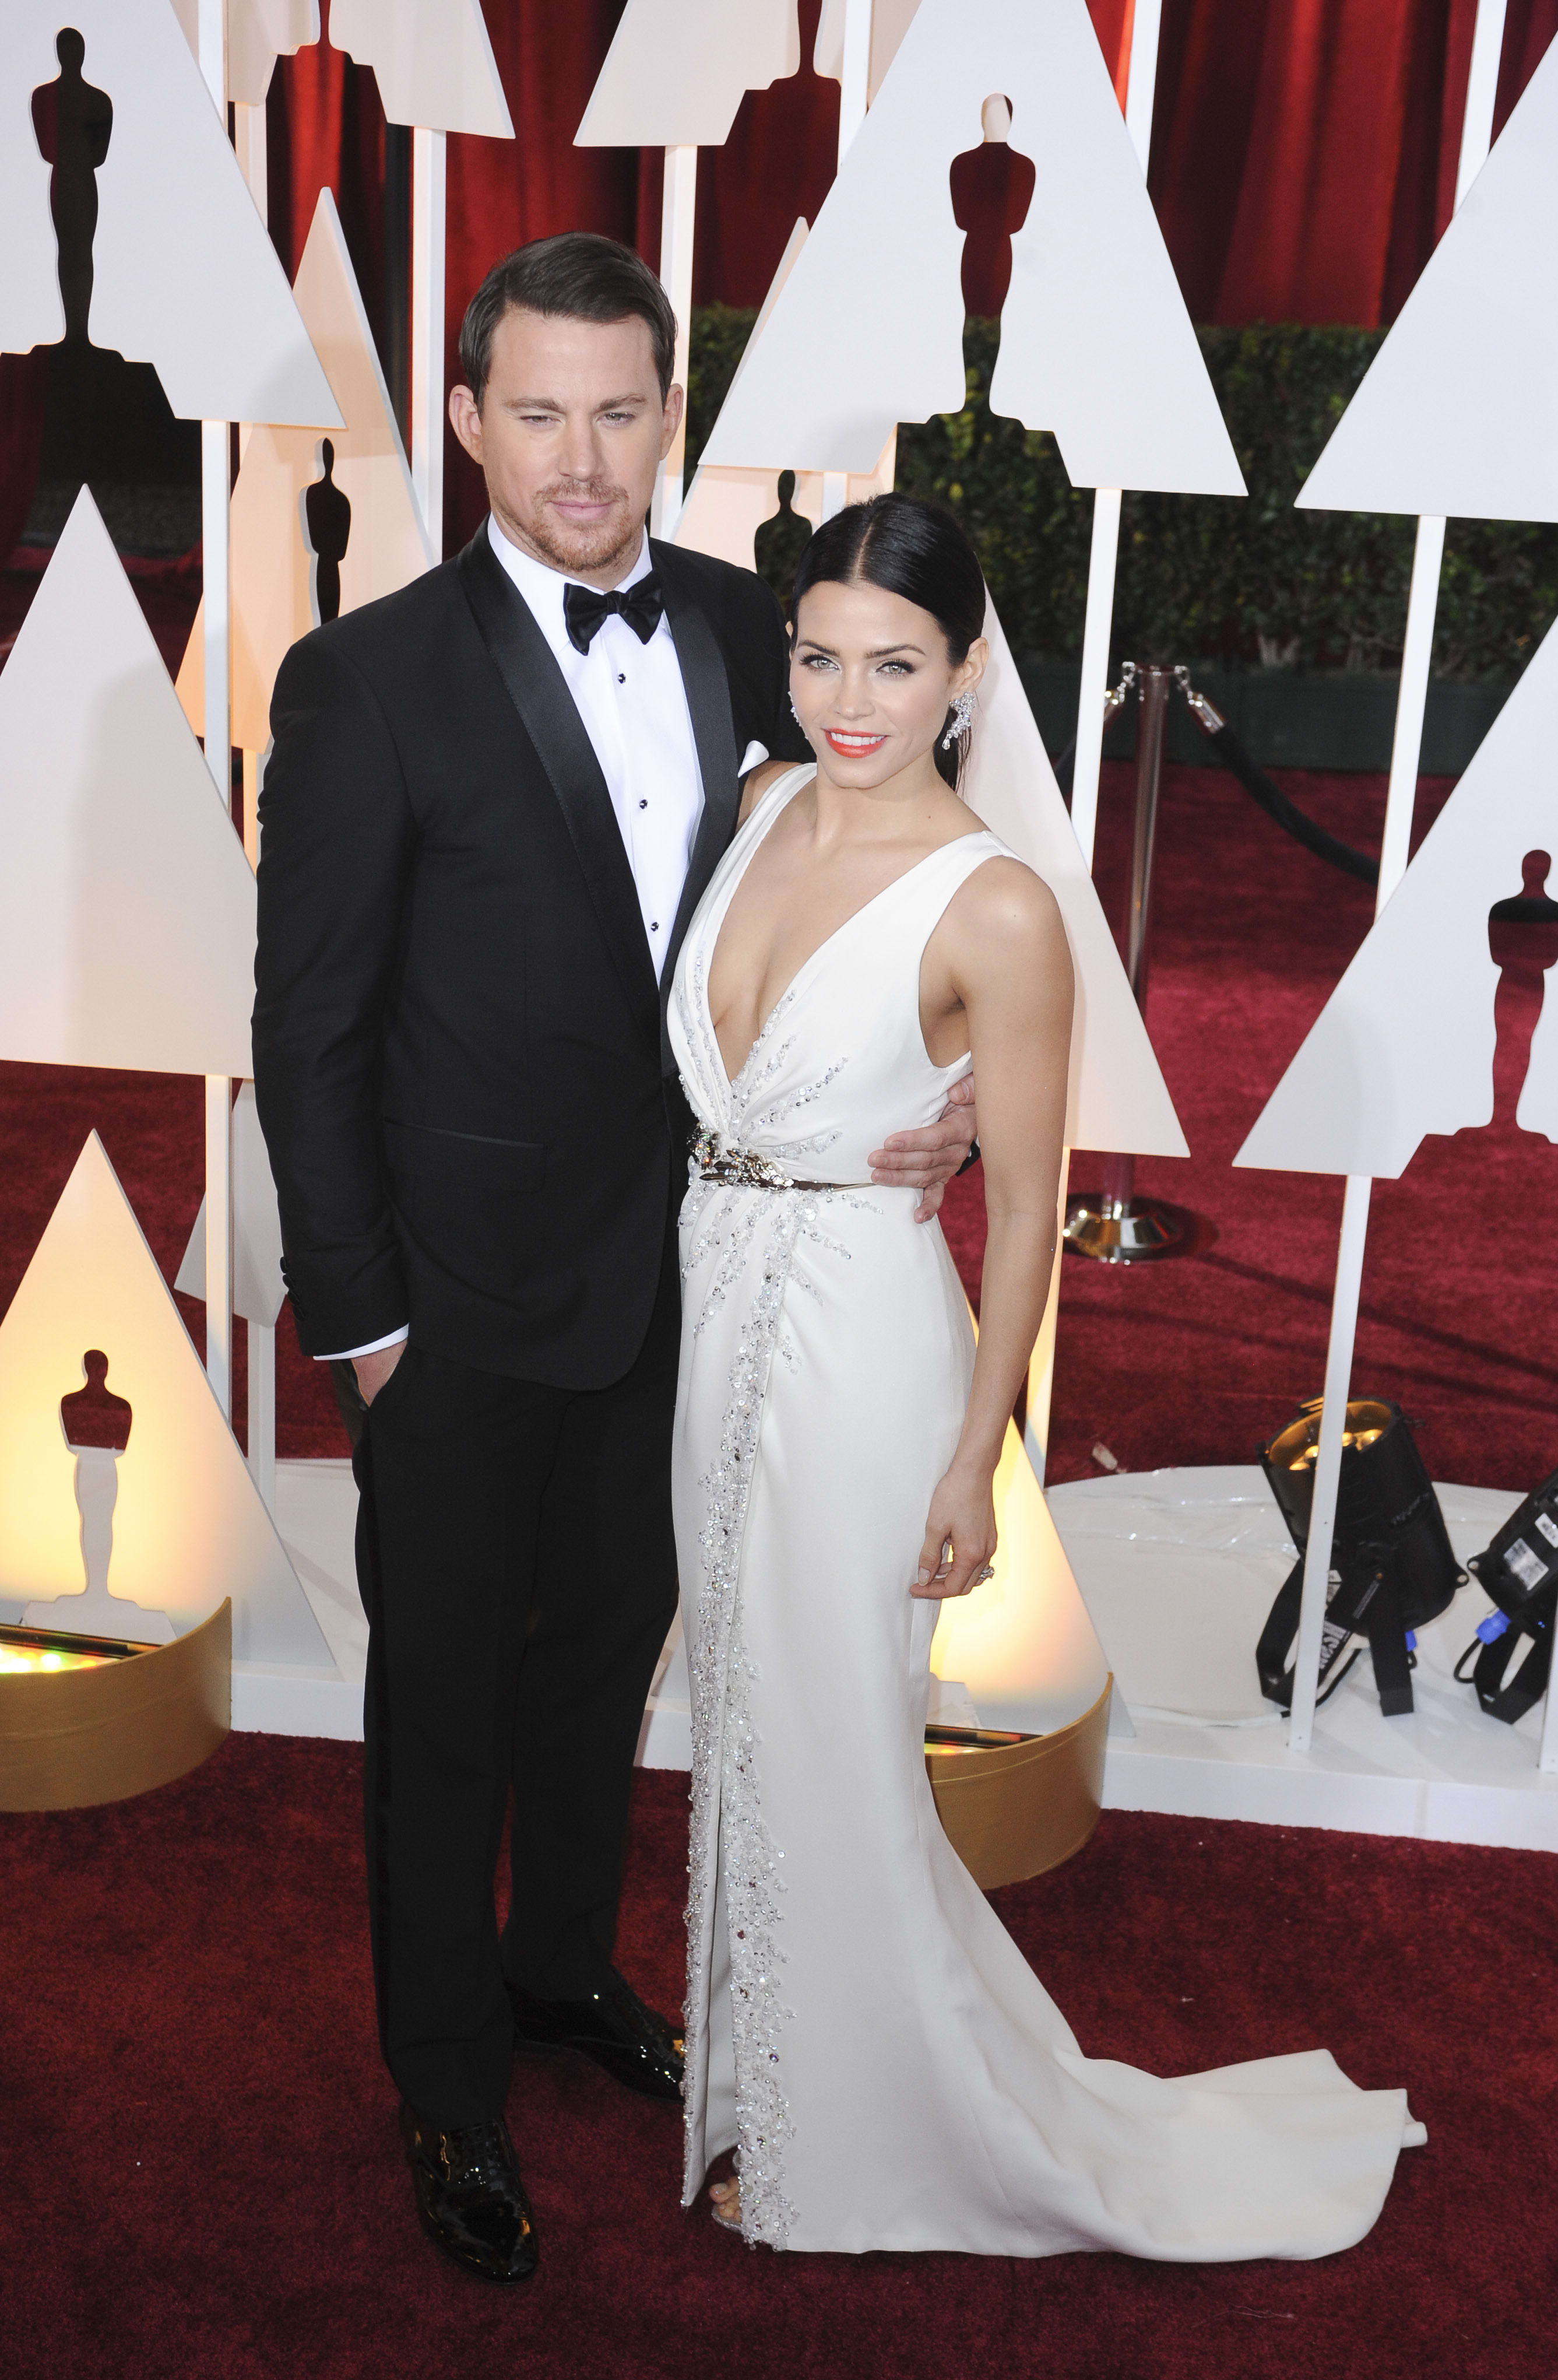 Jenna Dewan Tatum and Channing Tatum - The Hollywood Gossip